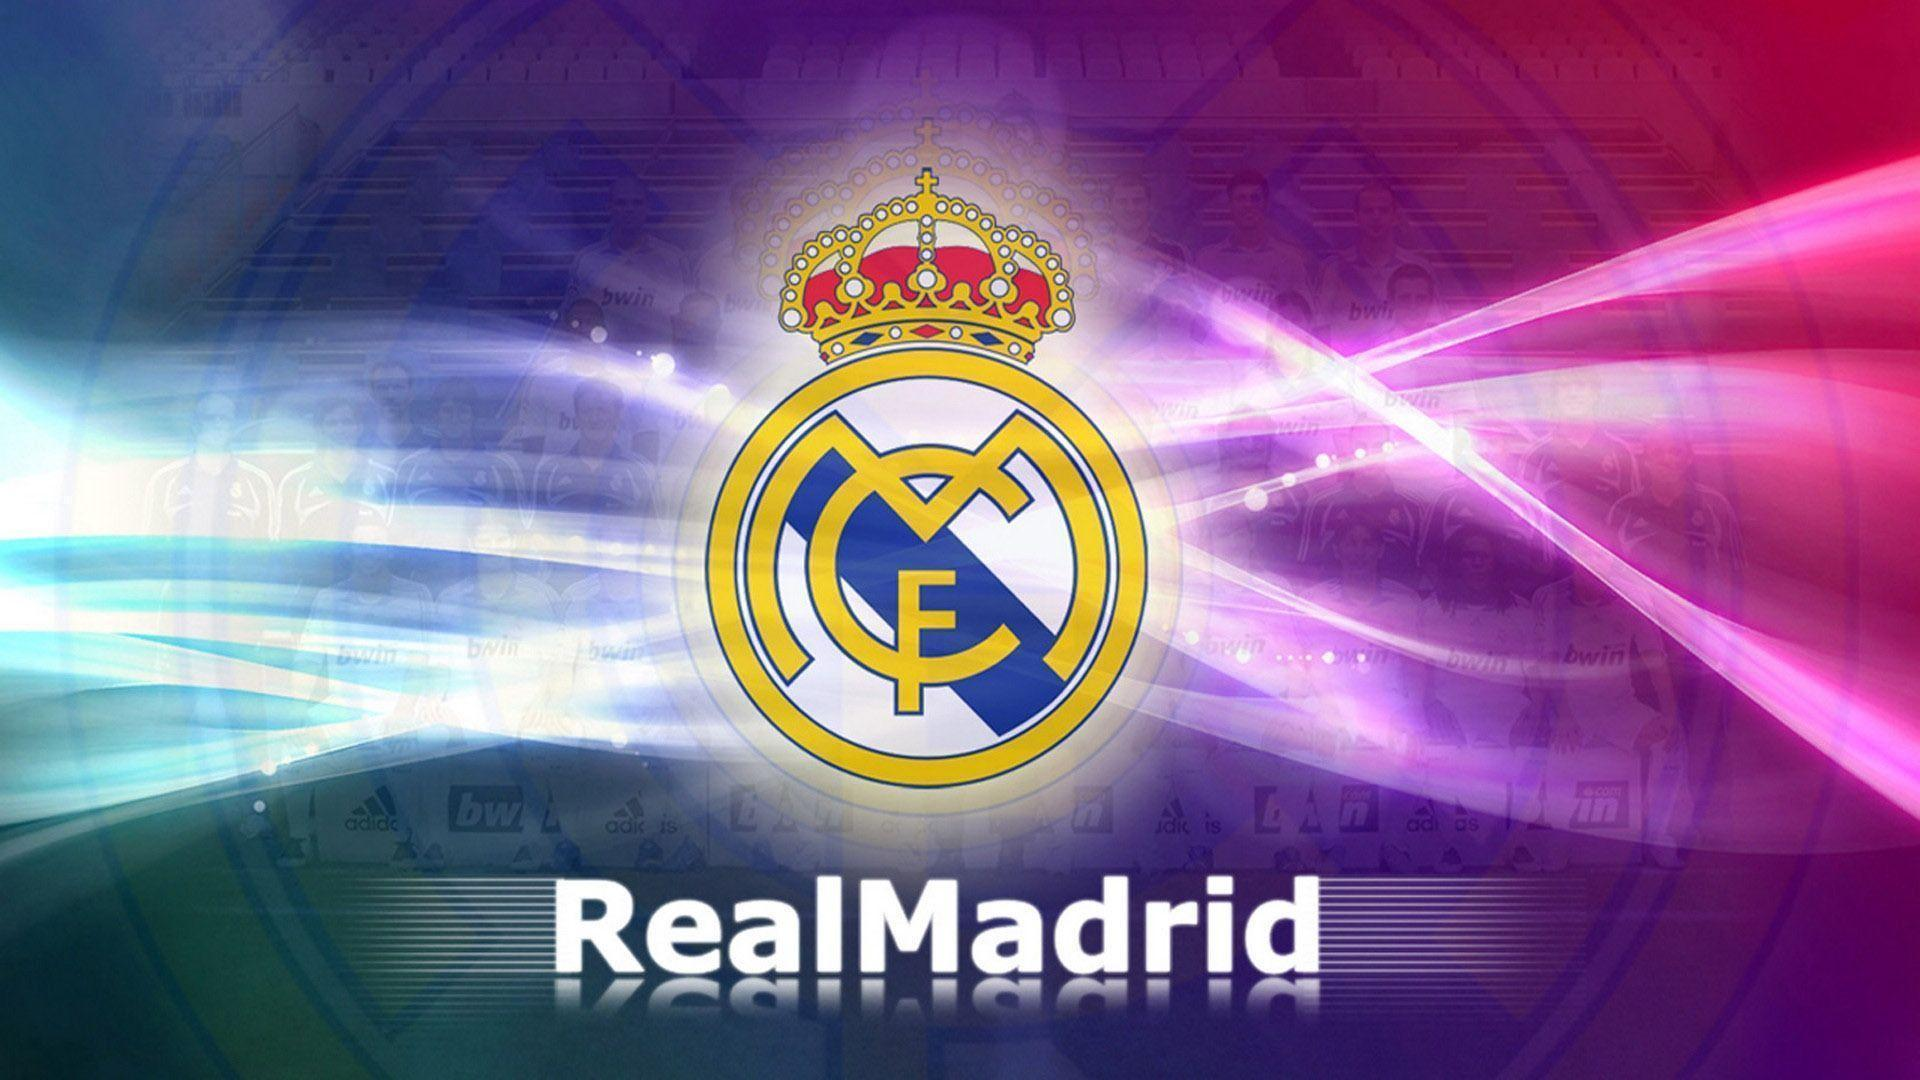 Real madrid 2017 wallpapers 3d wallpaper cave - Real madrid pictures wallpapers 2017 ...